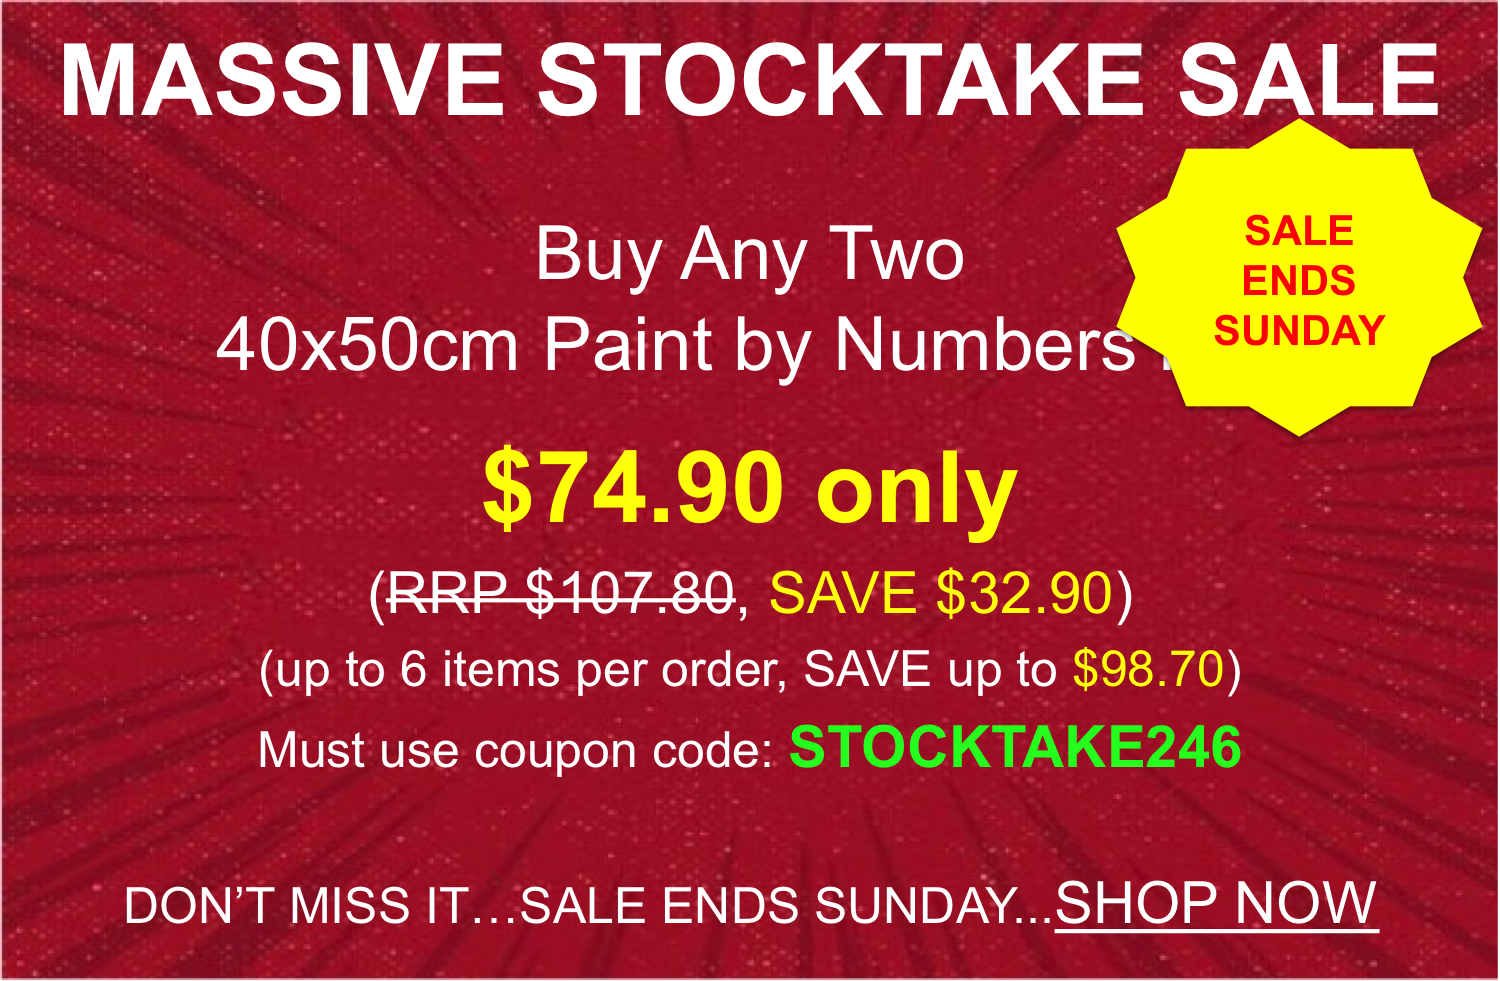 Paint by Numbers - Massive Stocktake Saving